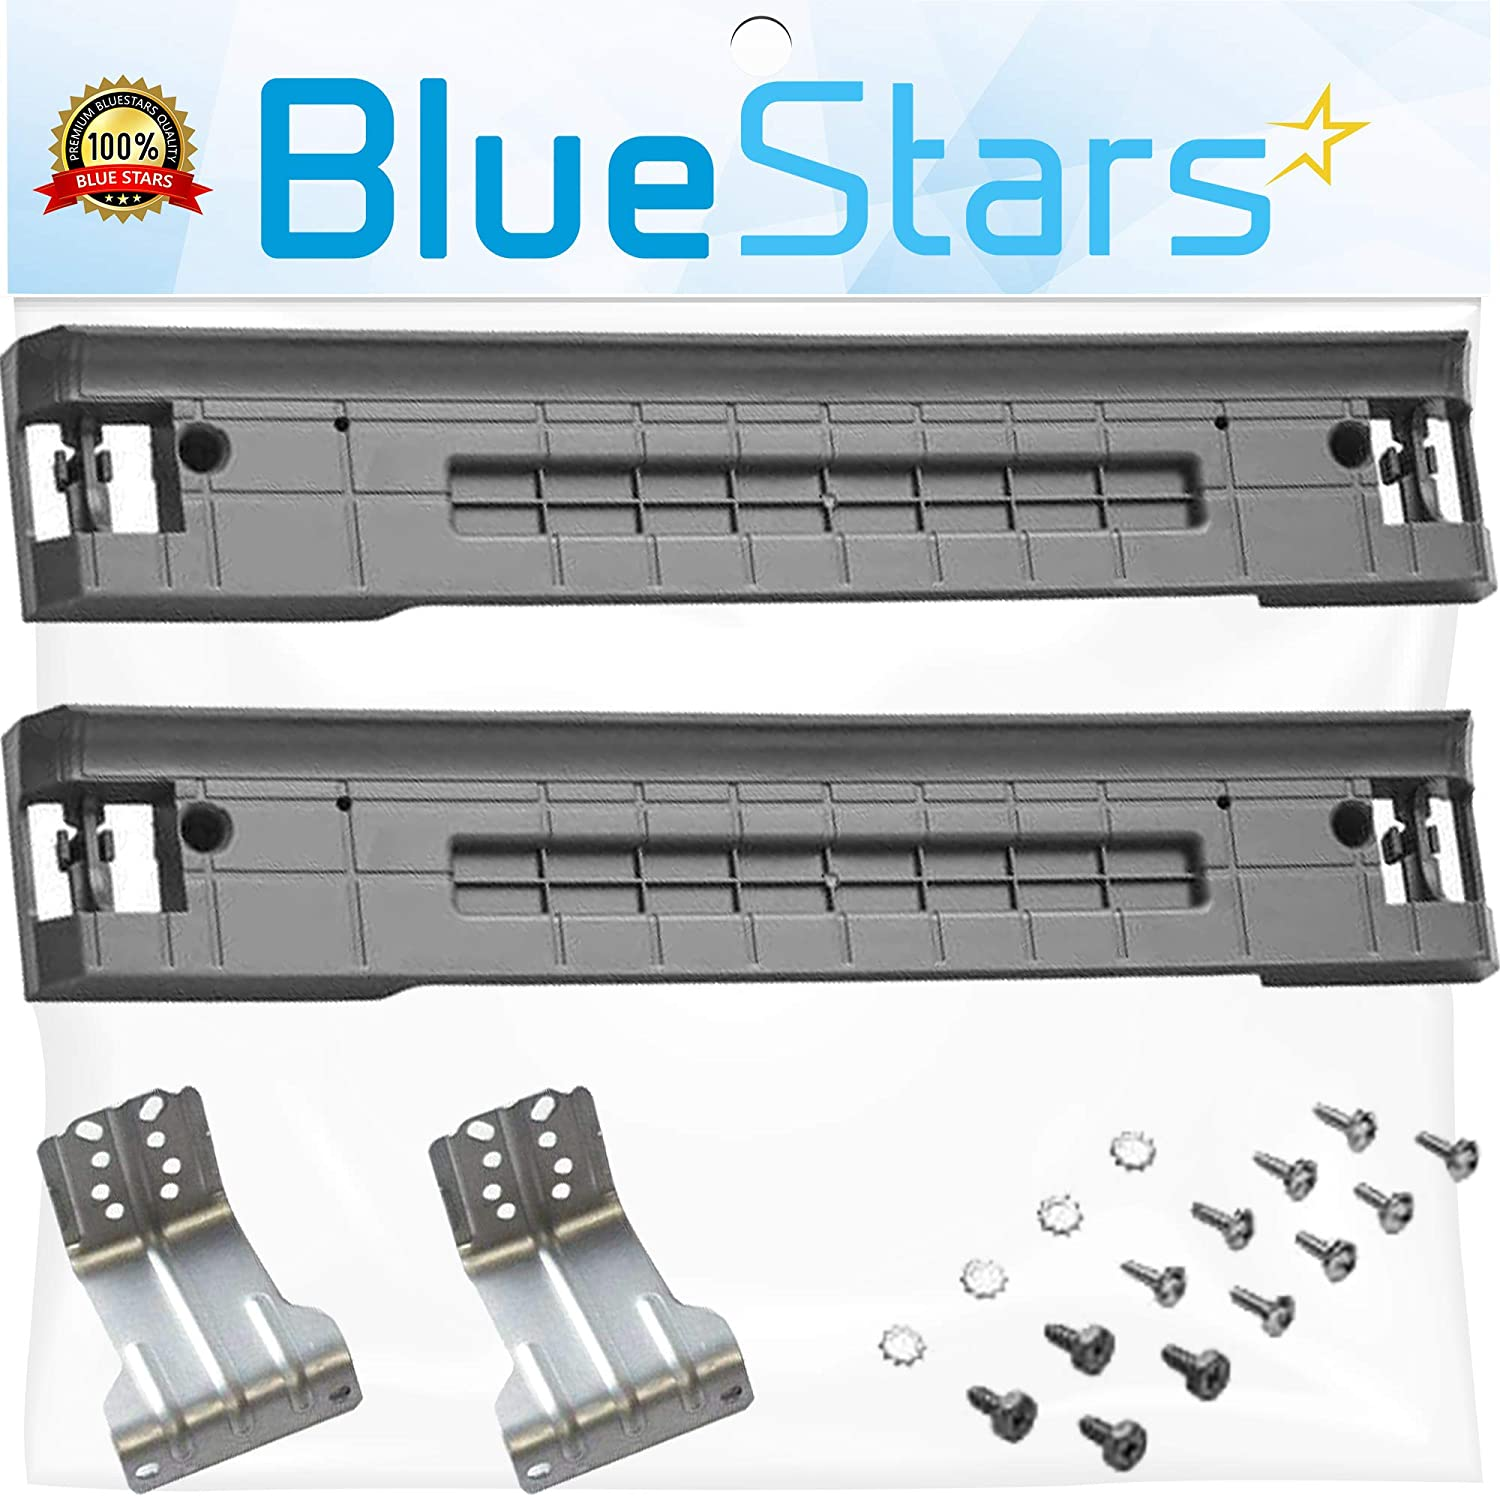 Ultra Durable SKK-7A Stacking Kit Replacement Part by Blue Stars - Exact Fit for Samsung Washer and Dryer - Replaces SKK-7A SK-5AXAA SK-5A